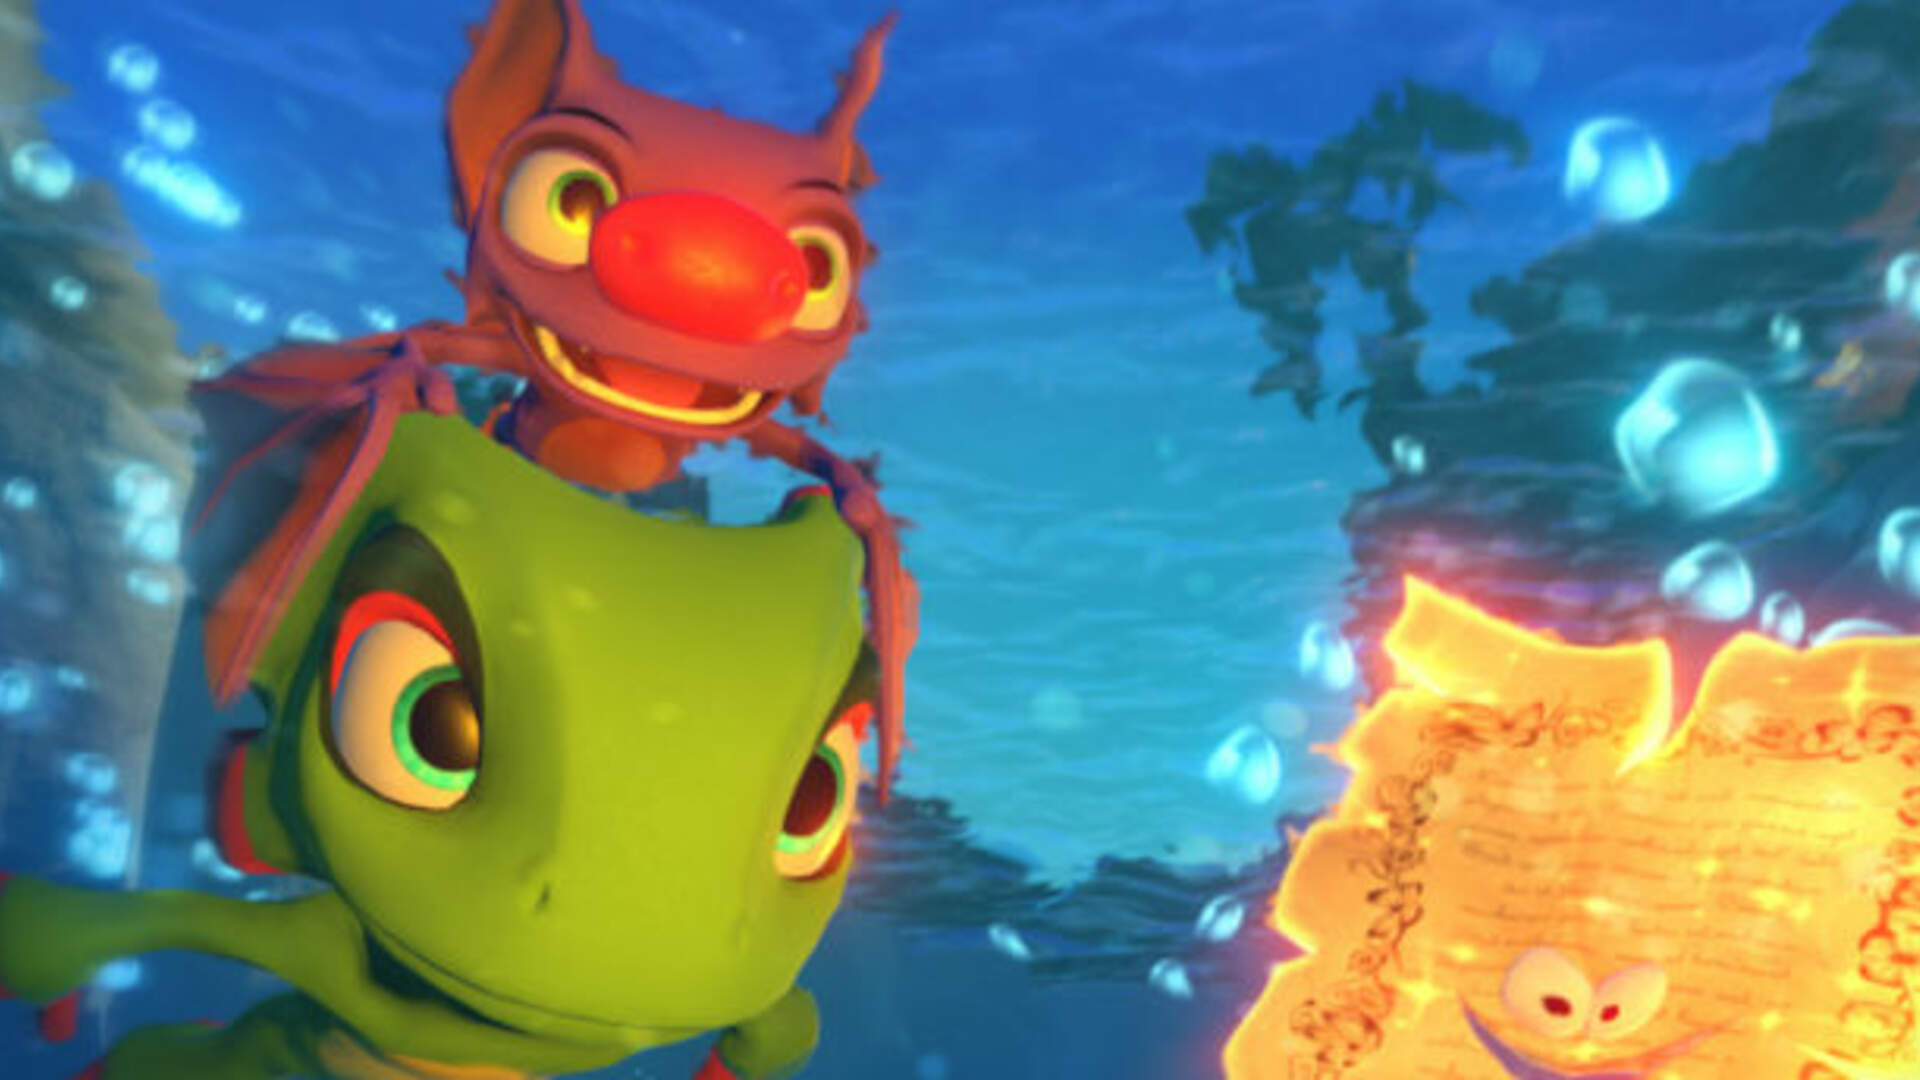 Yooka-Laylee Gets a Patch to Fix Some of Its Bugs and Performance Issues